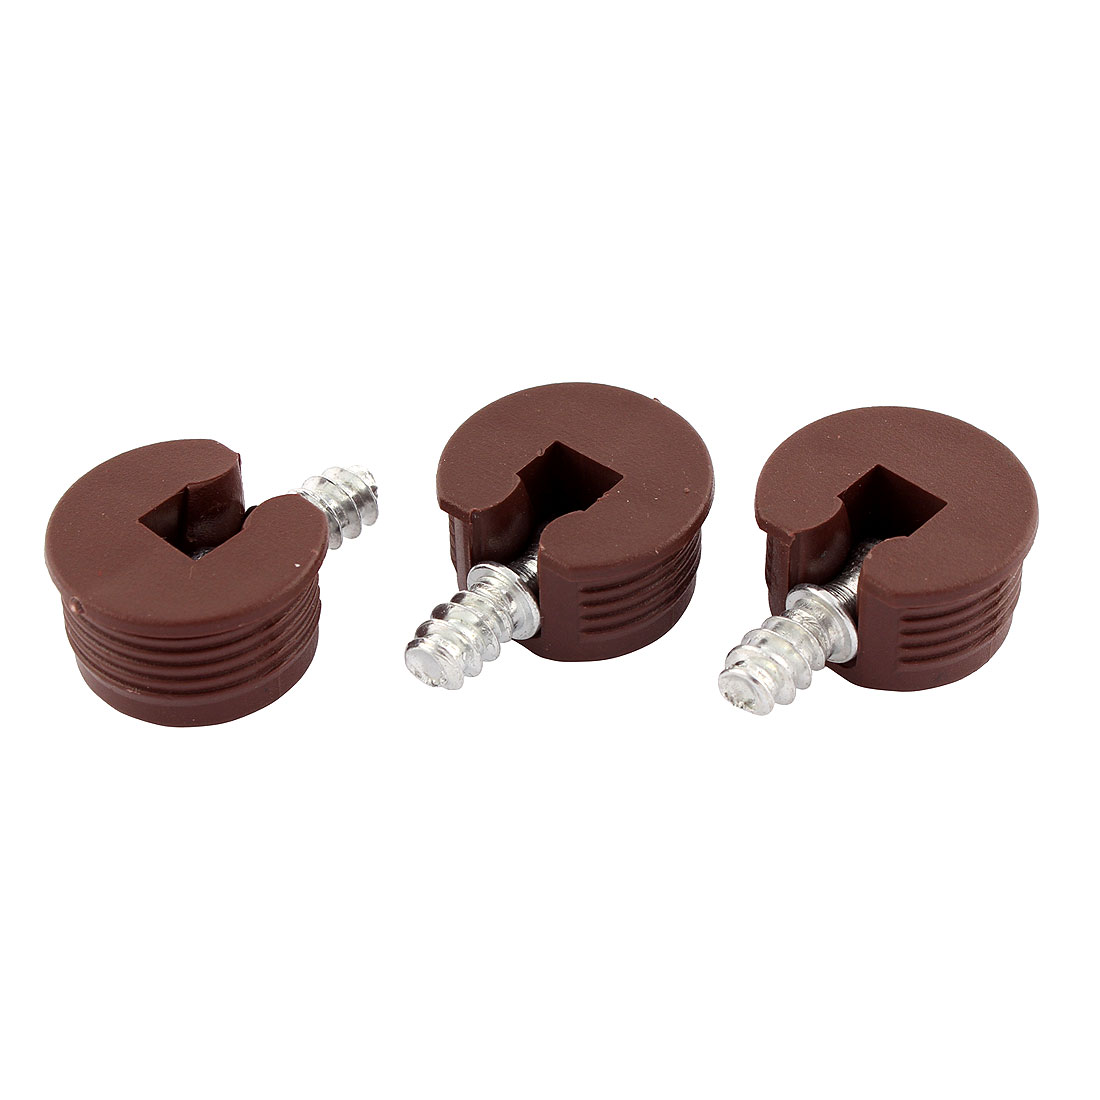 Metal Two-in-One Screw in Shelf Support Pin Supporter Brown 3Pcs